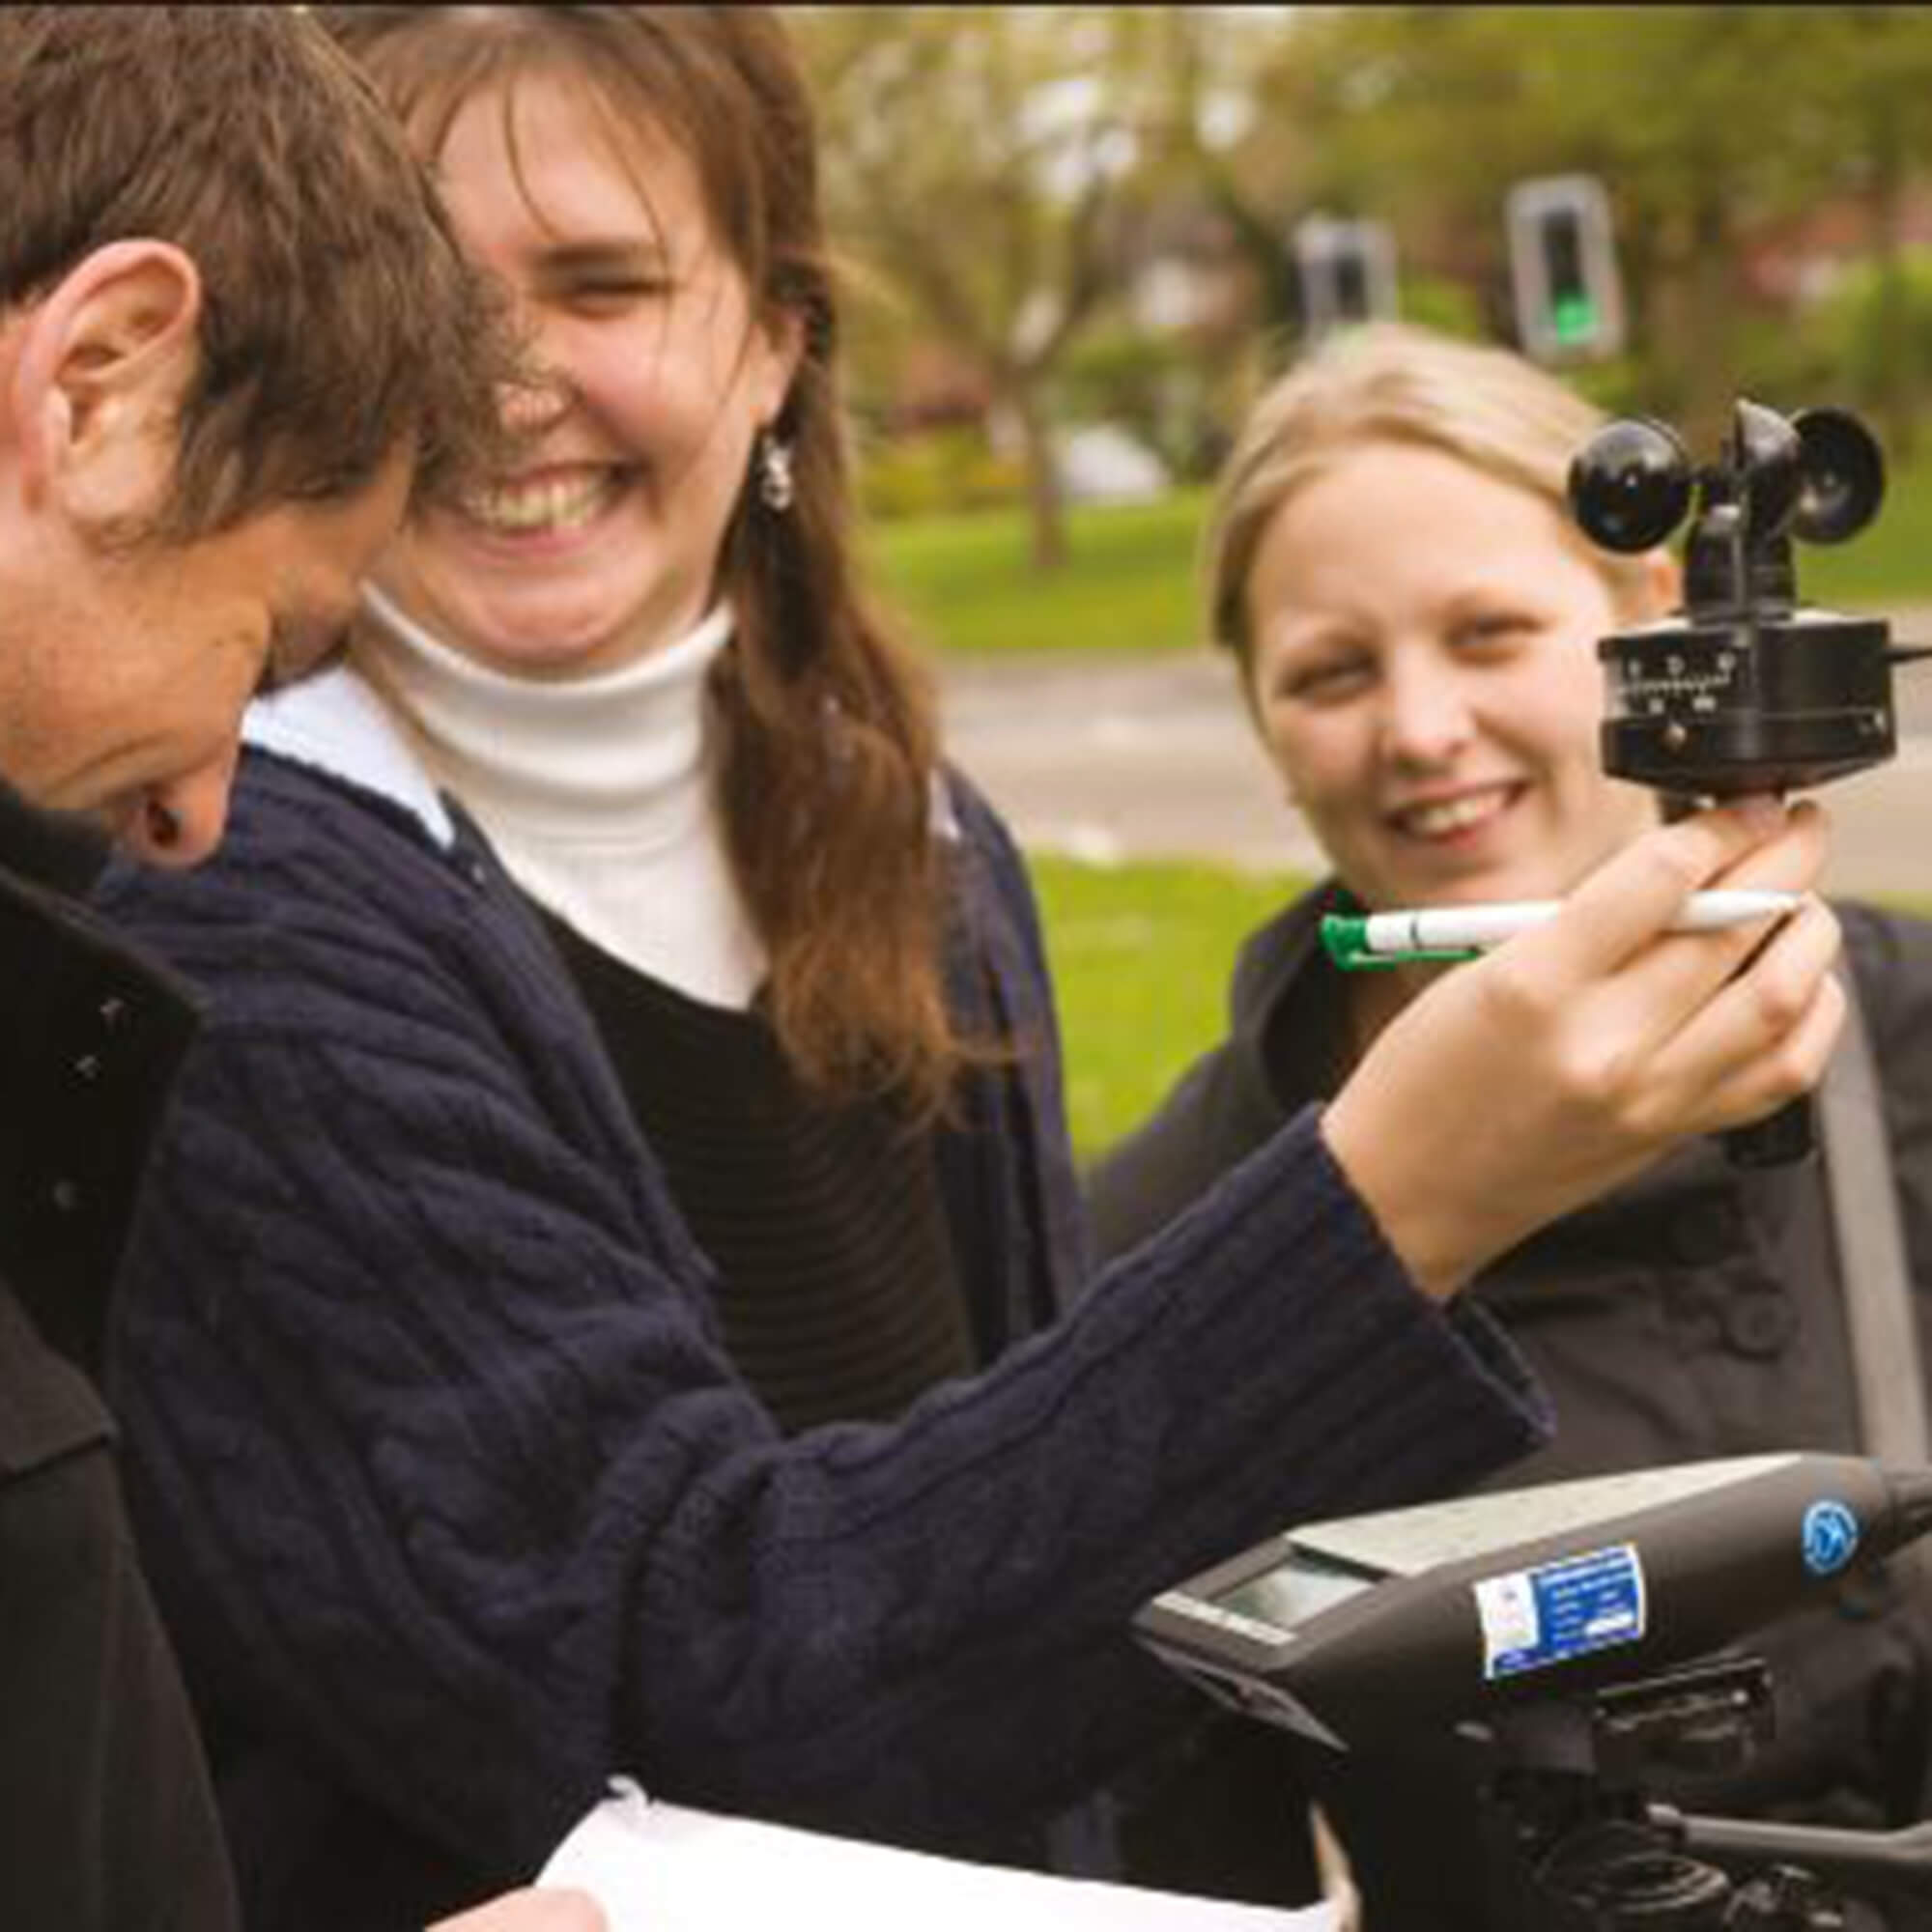 Three students using noise measuring equipment outdoors